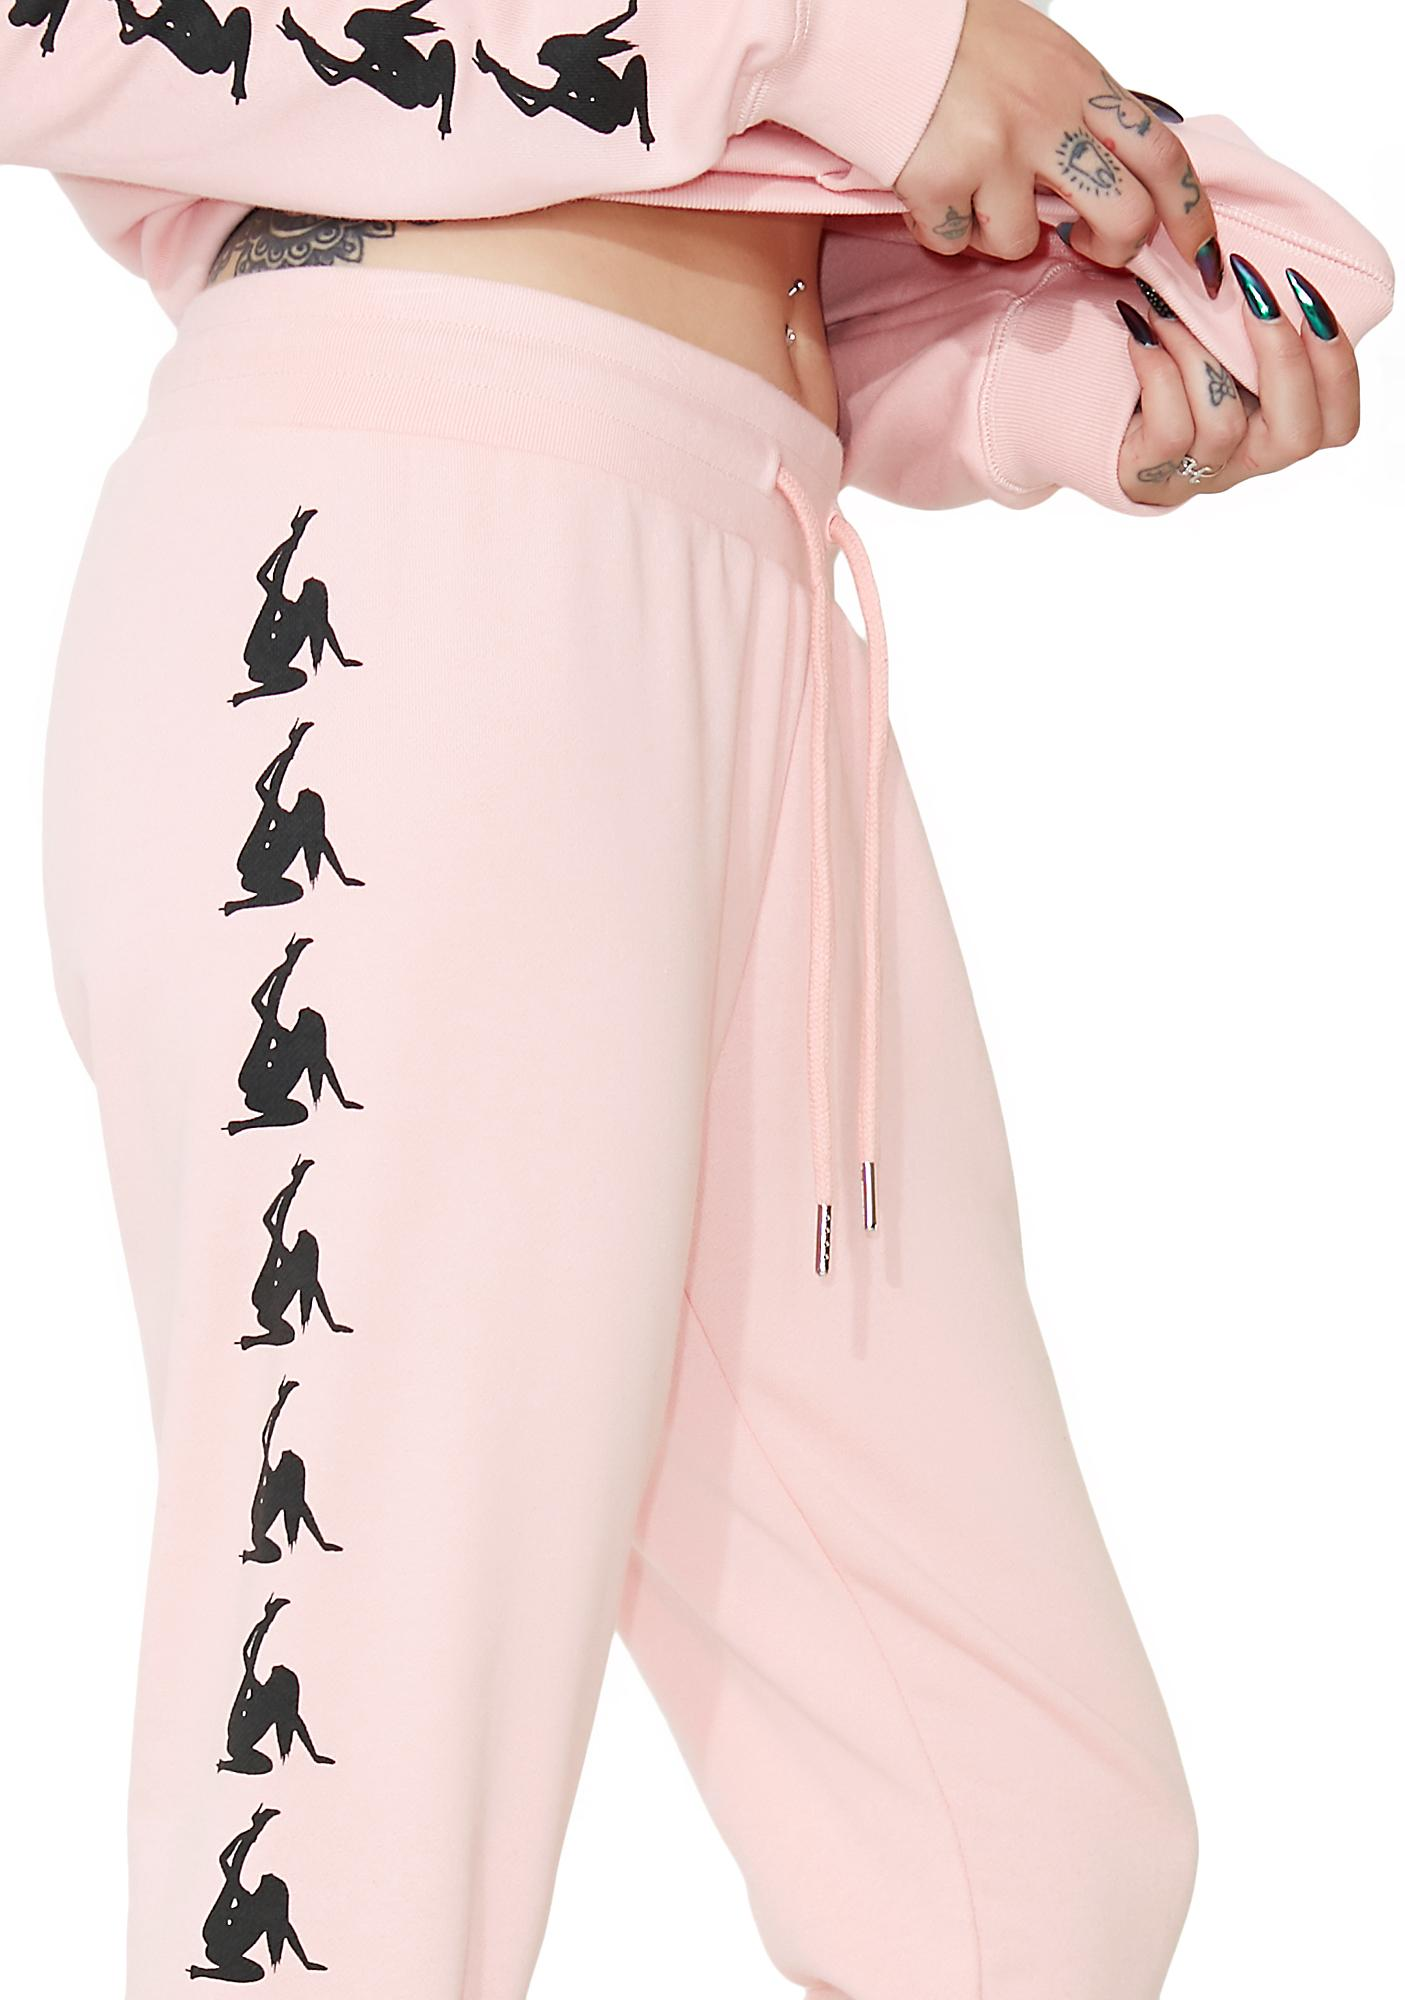 Married to the Mob x Penthouse Dancer Joggers